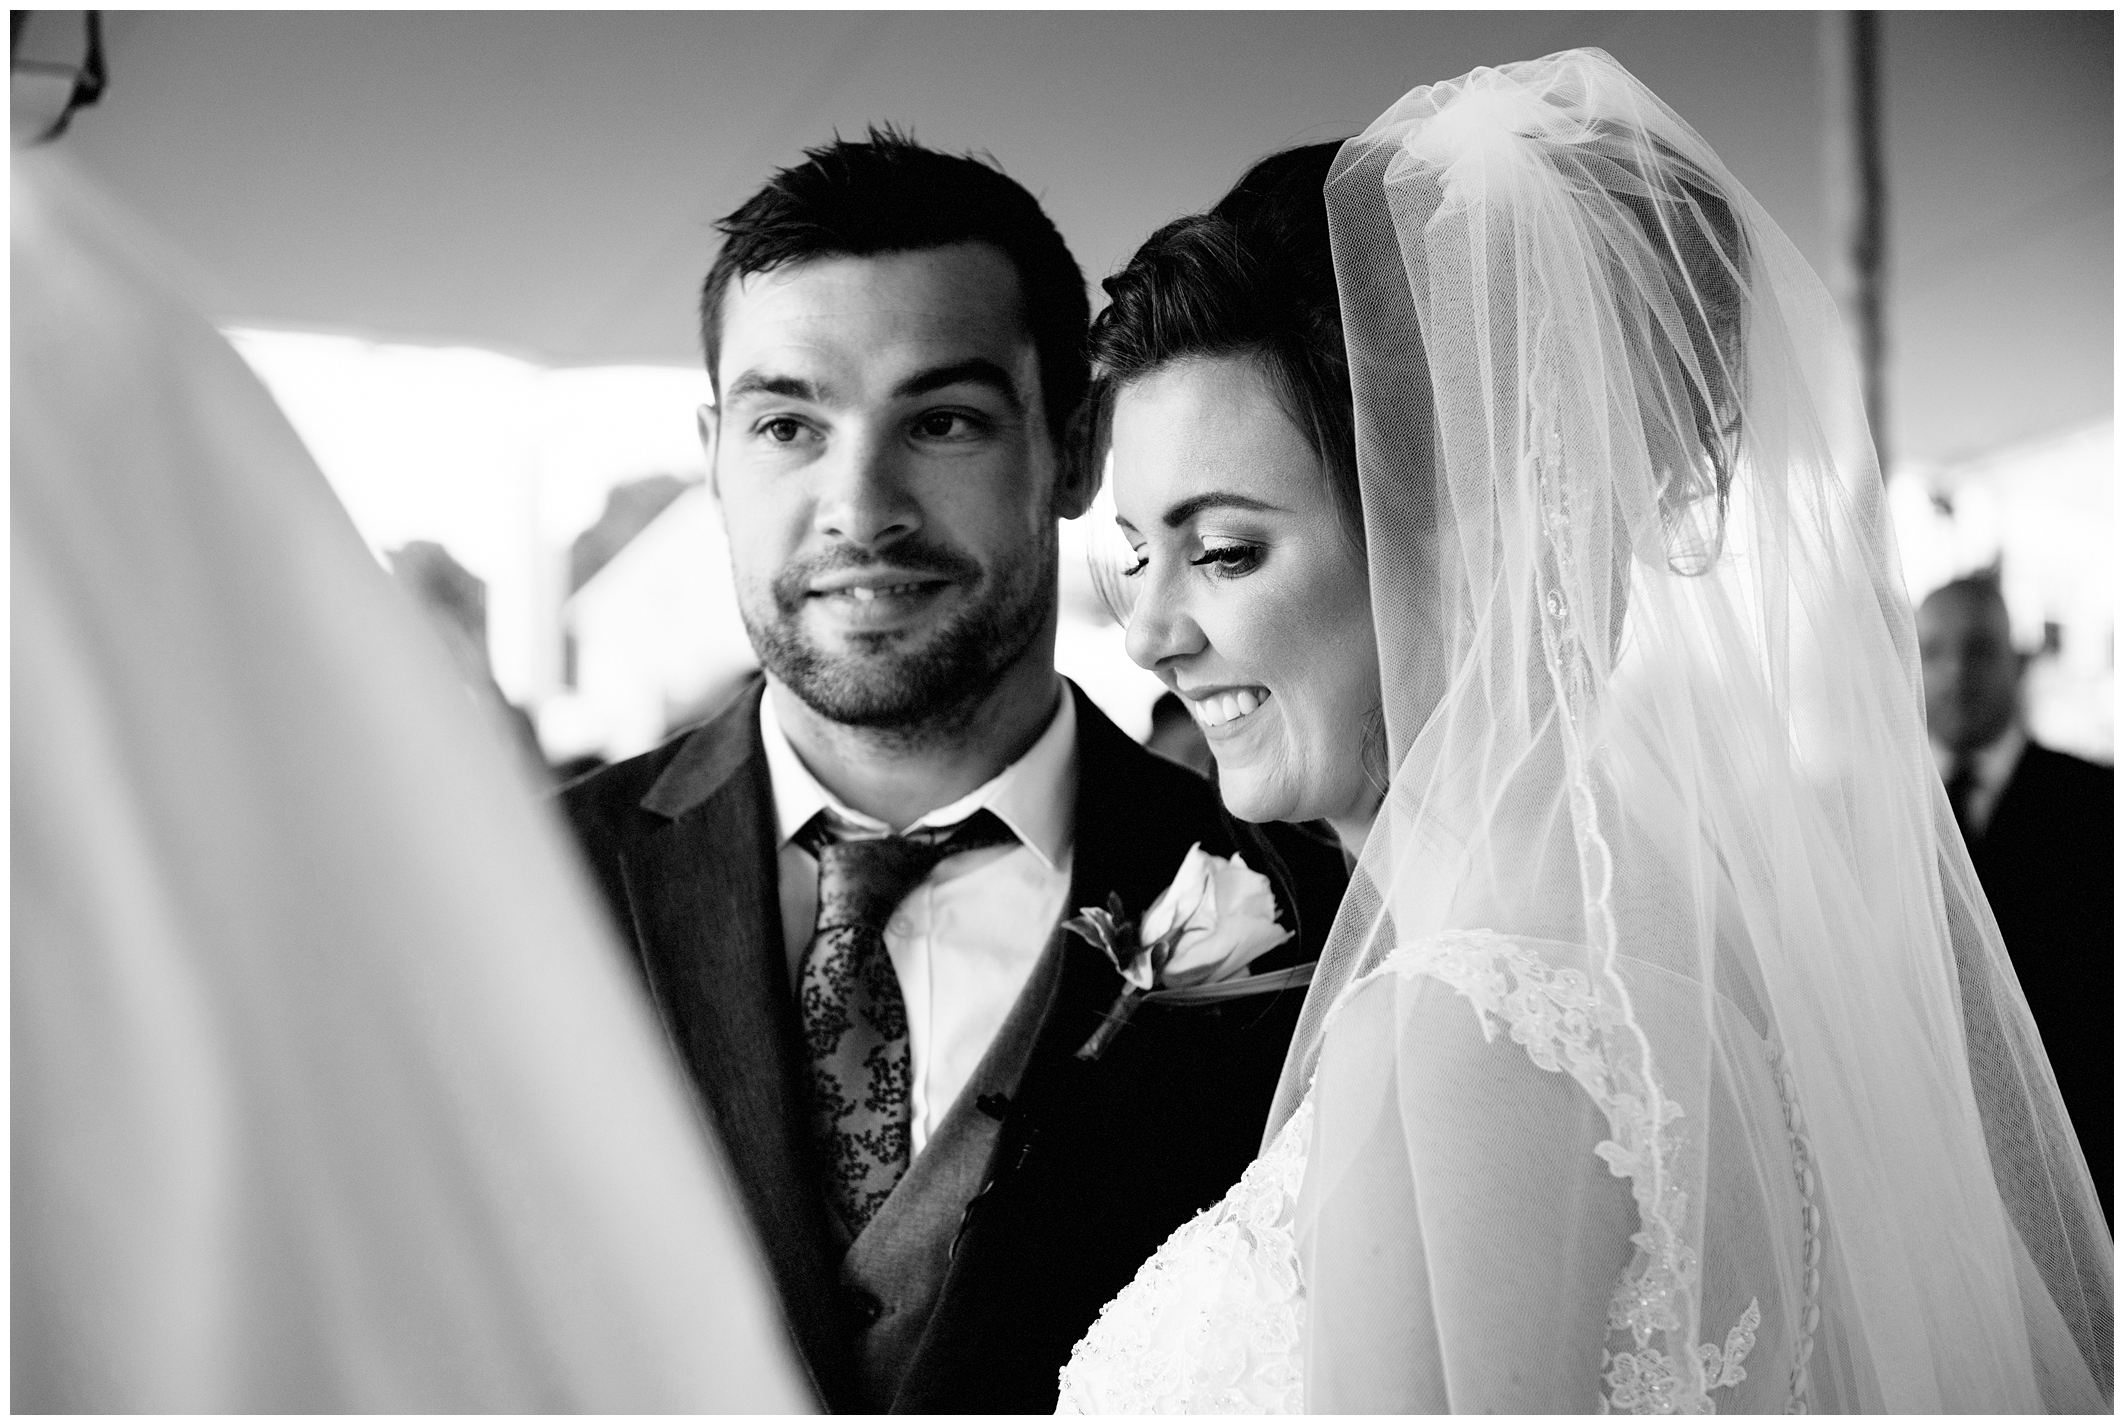 Lynsey_Andy_Rossharbour_Fermanagh_wedding_jude_browne_photography_0066.jpg